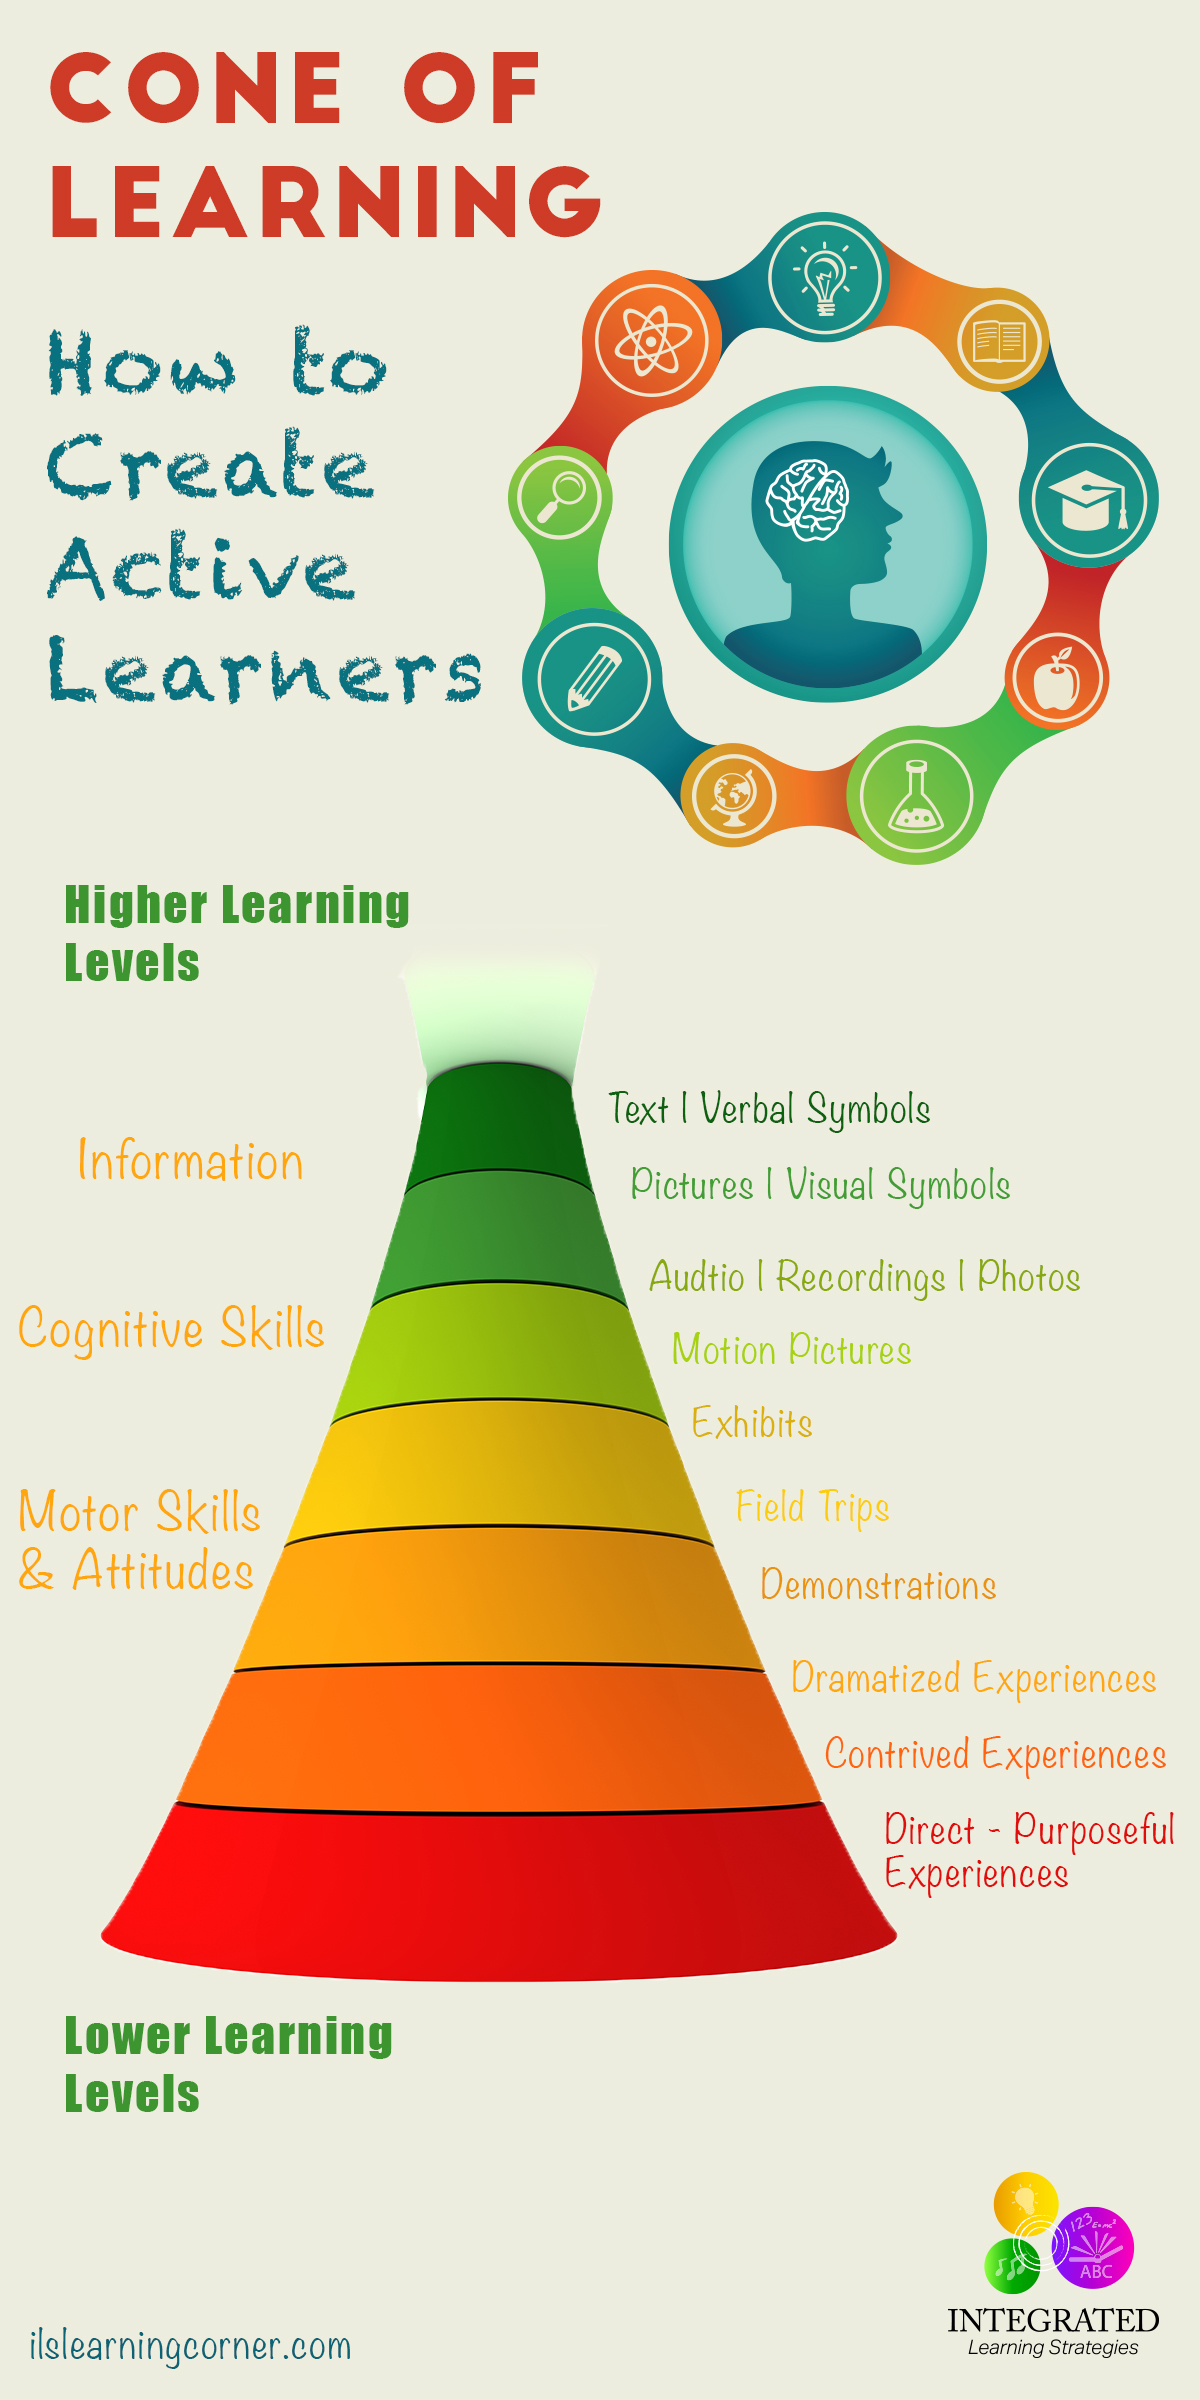 CONE OF LEARNING: Creating Active Learners Through Sensory